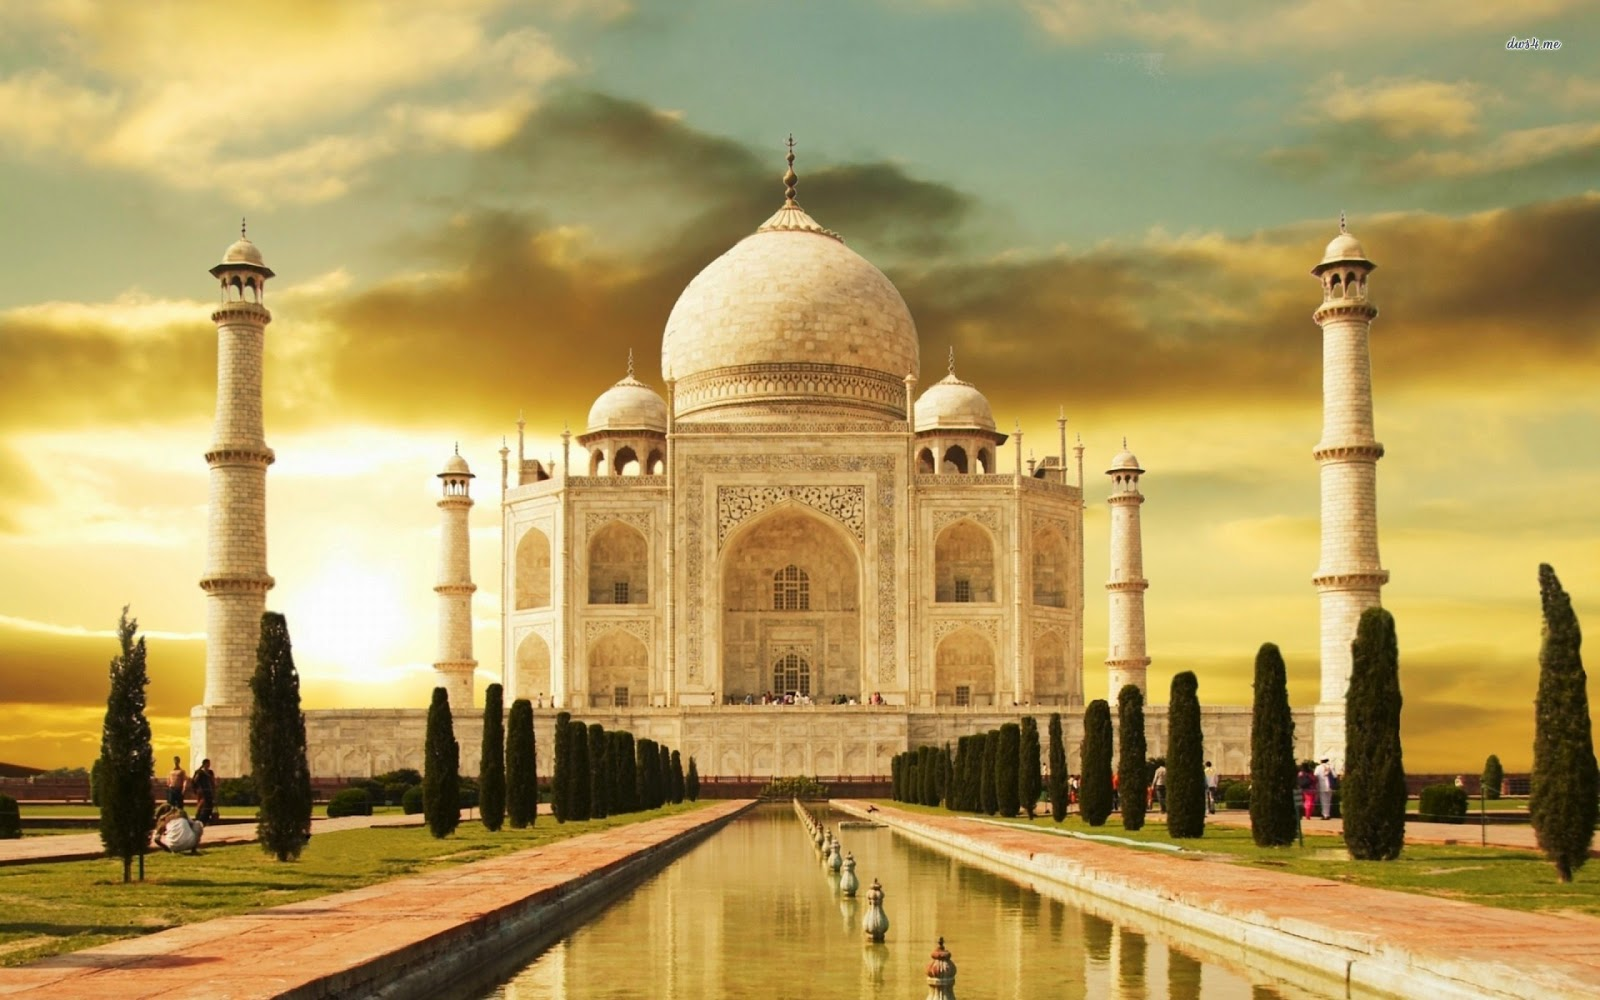 essay historical places india Essay on visit to historical places in india 2008 resume further these historical places in india and confident over the astonishing architecture and make.